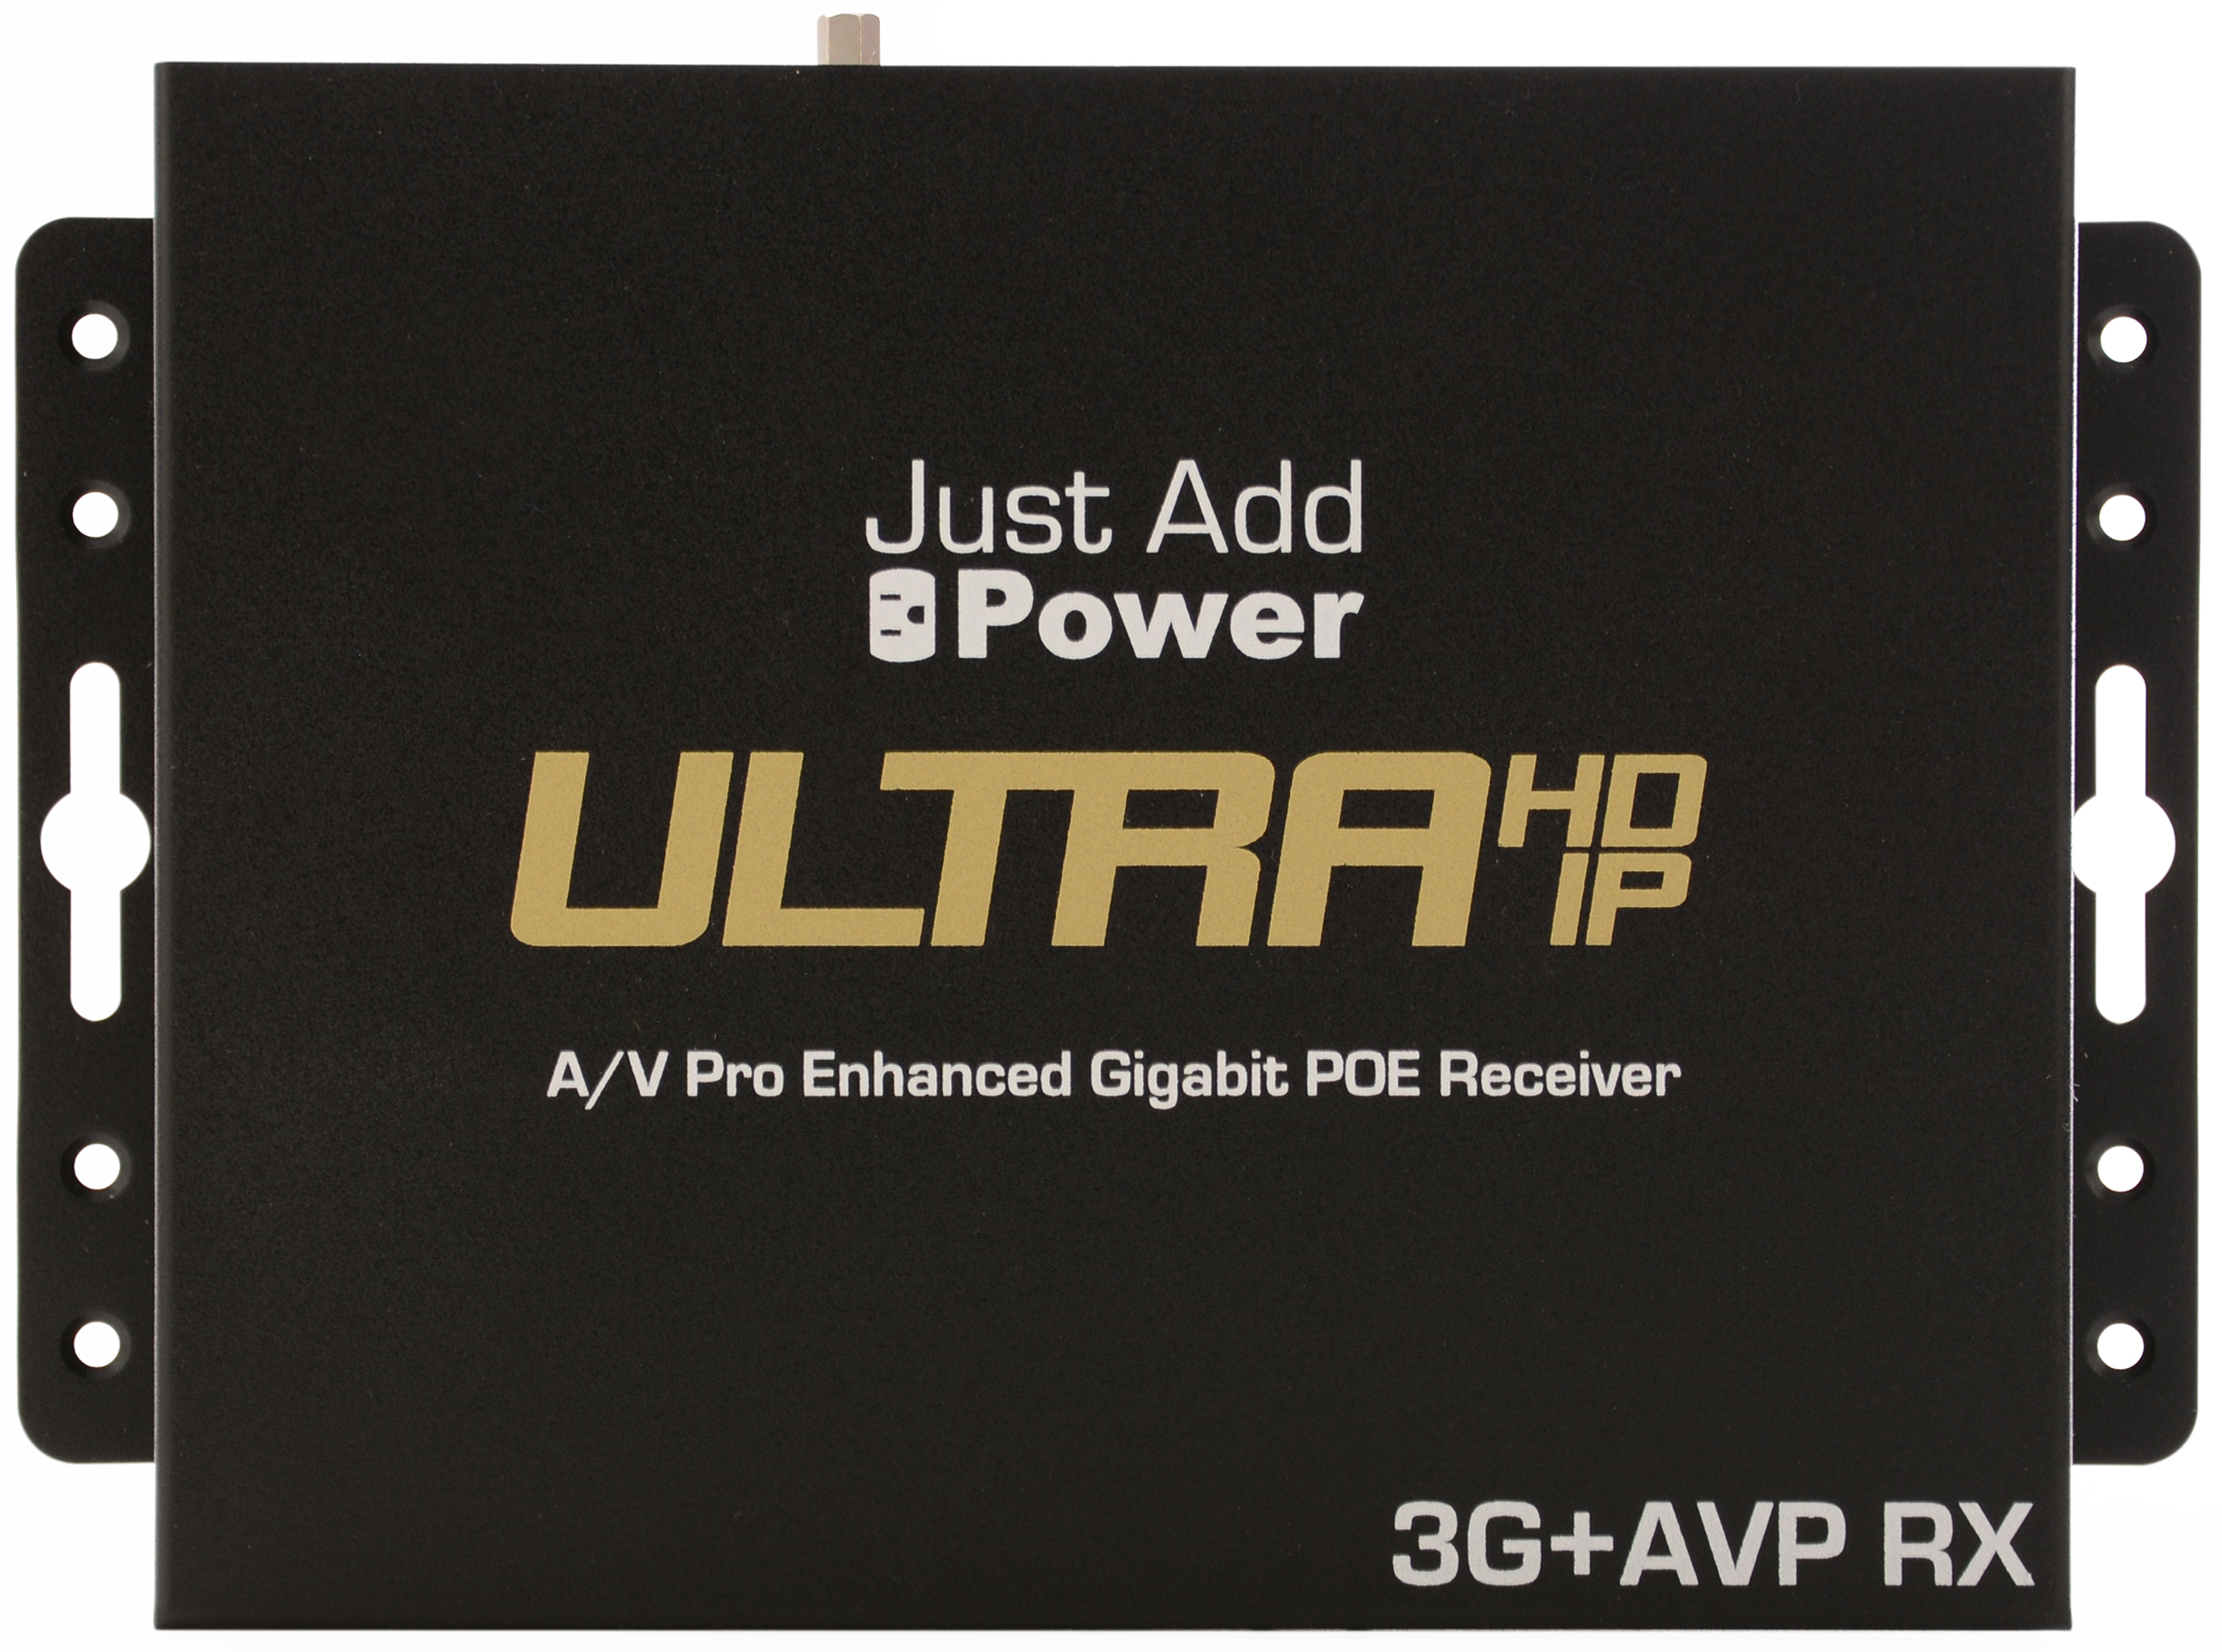 How To Install Hdmi Over Ip Create A 4k Uhd Or 1080p Video Wires The You Run For Your Distribution With Hdcp 22 Support